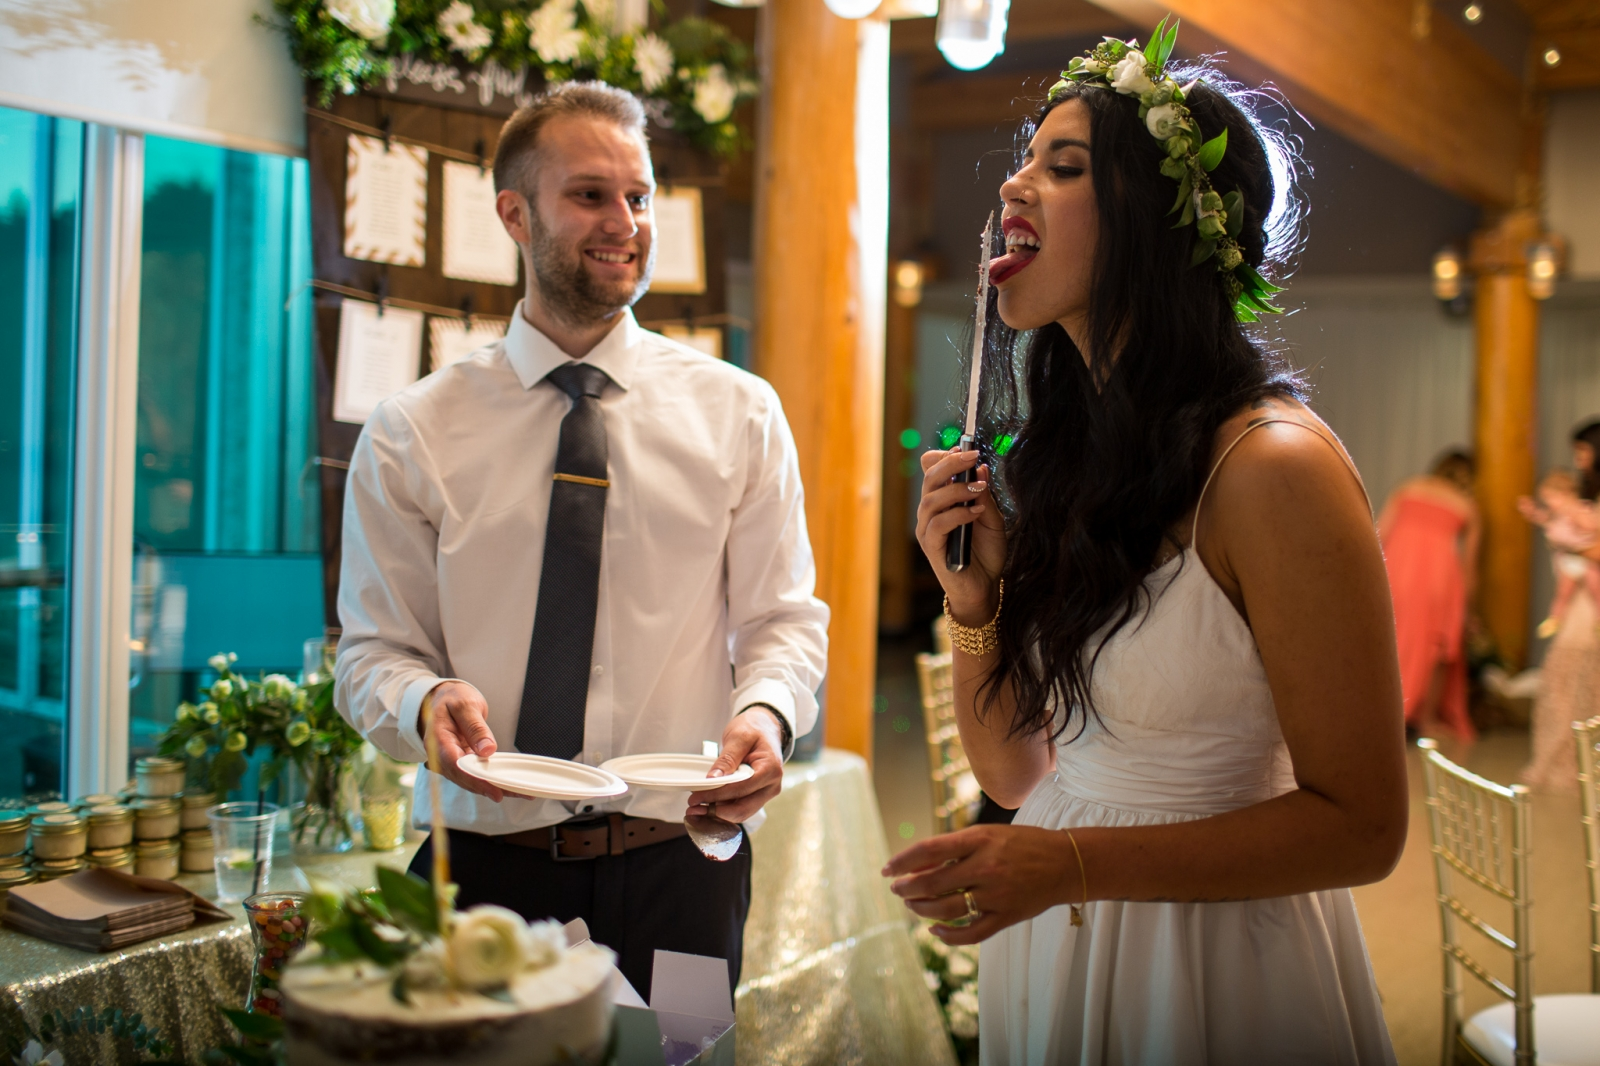 a groom smiles as his wife licks the knife after cake cutting in a fun wedding photo